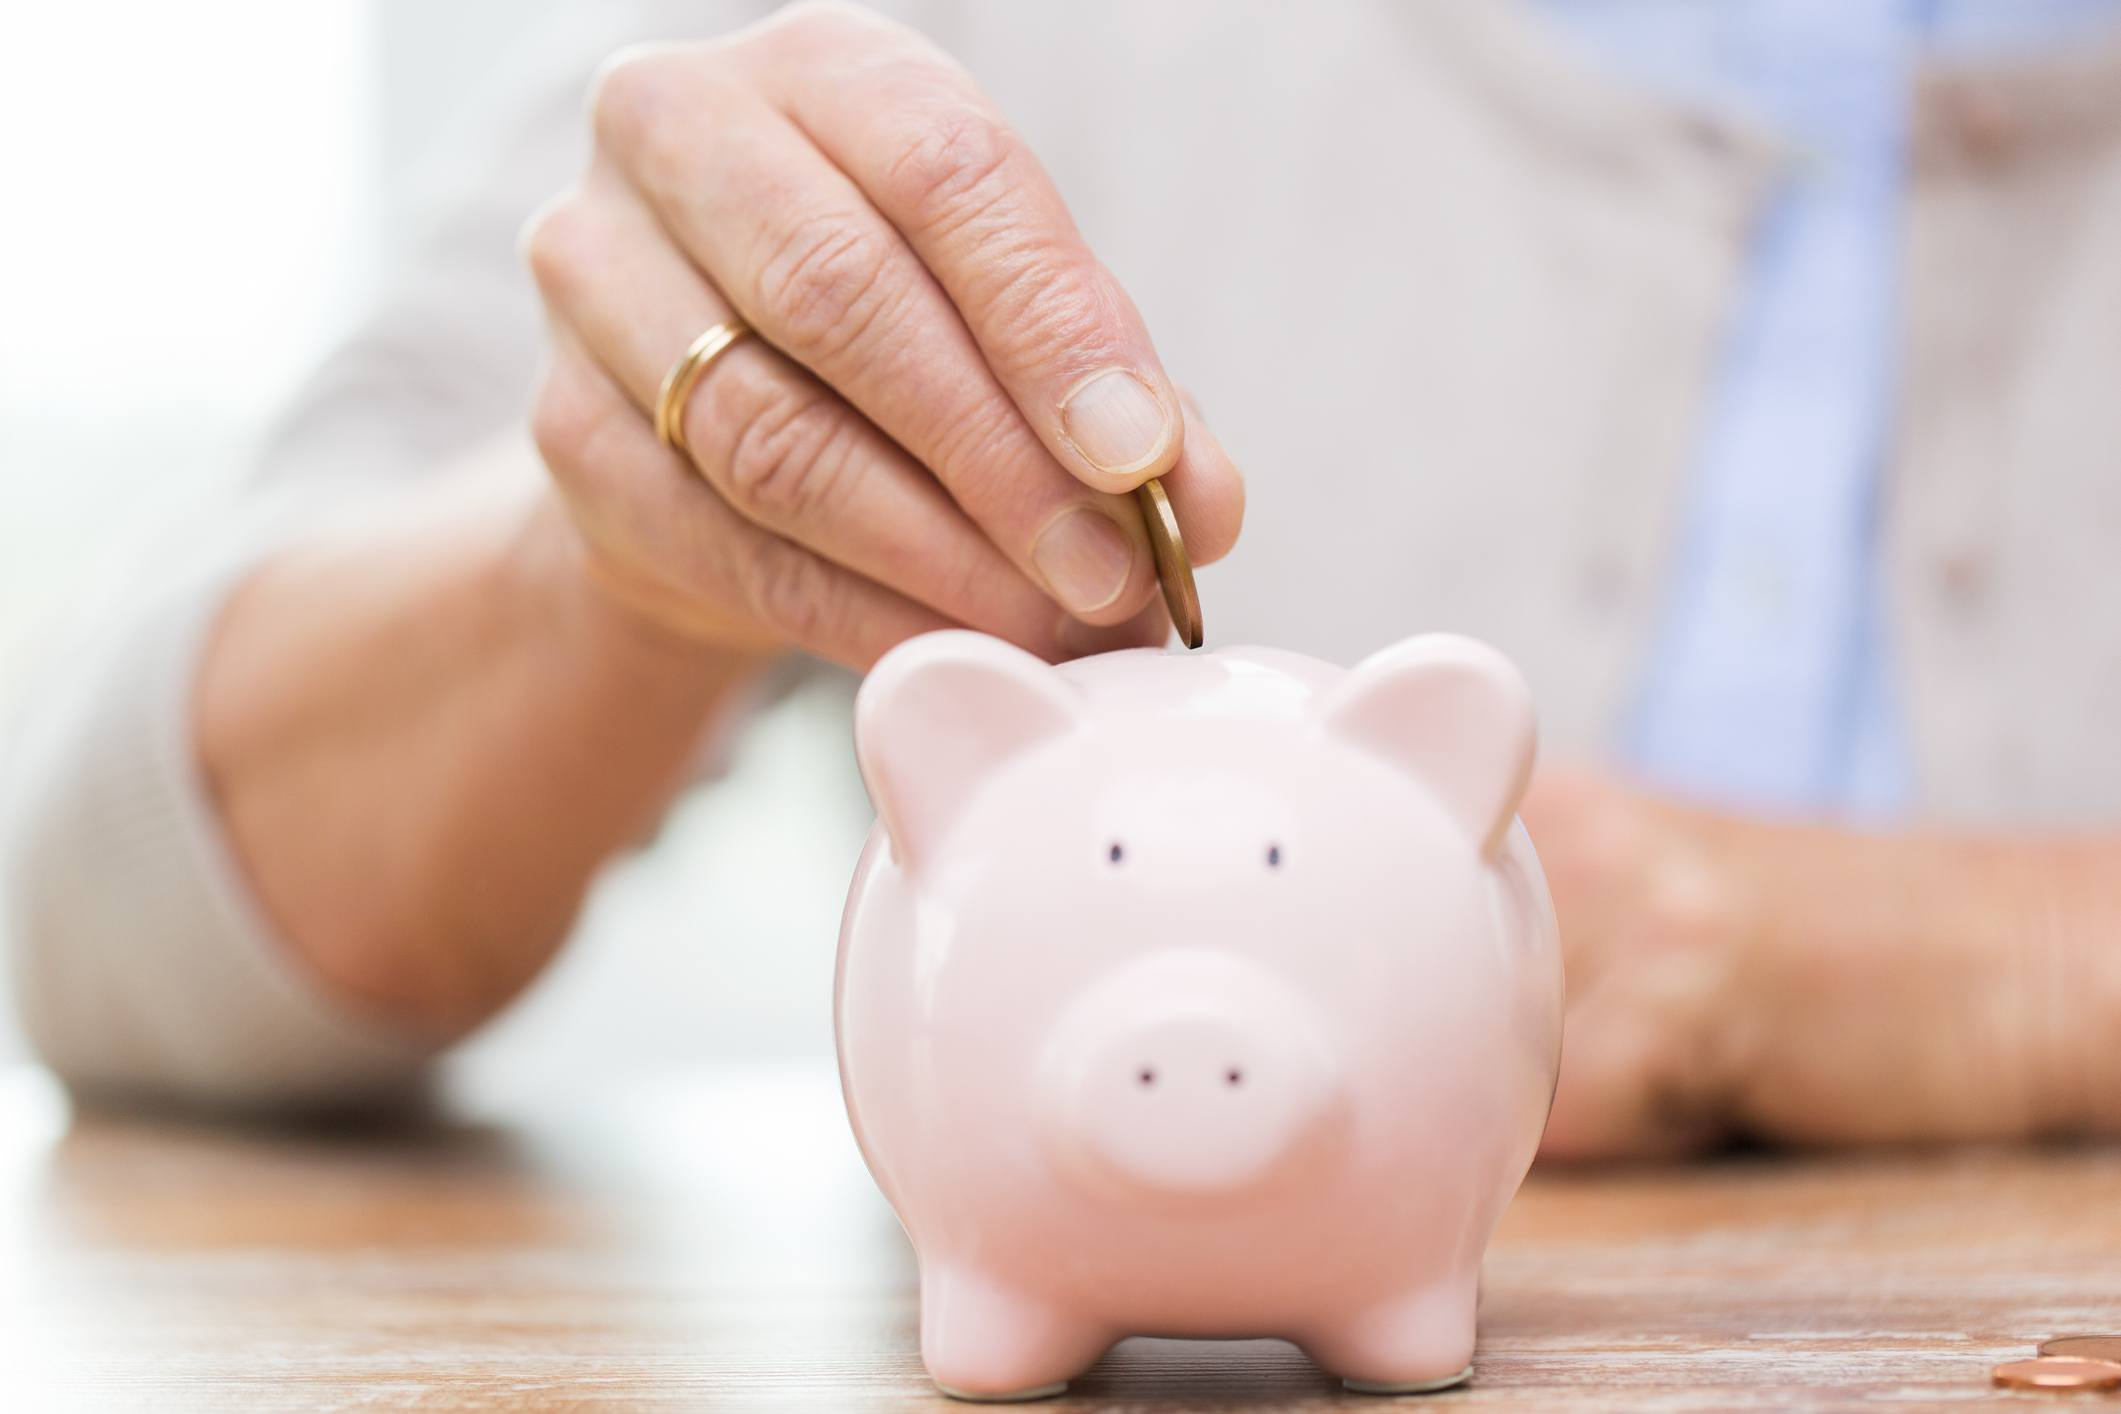 woman hand putting coin into piggy bank